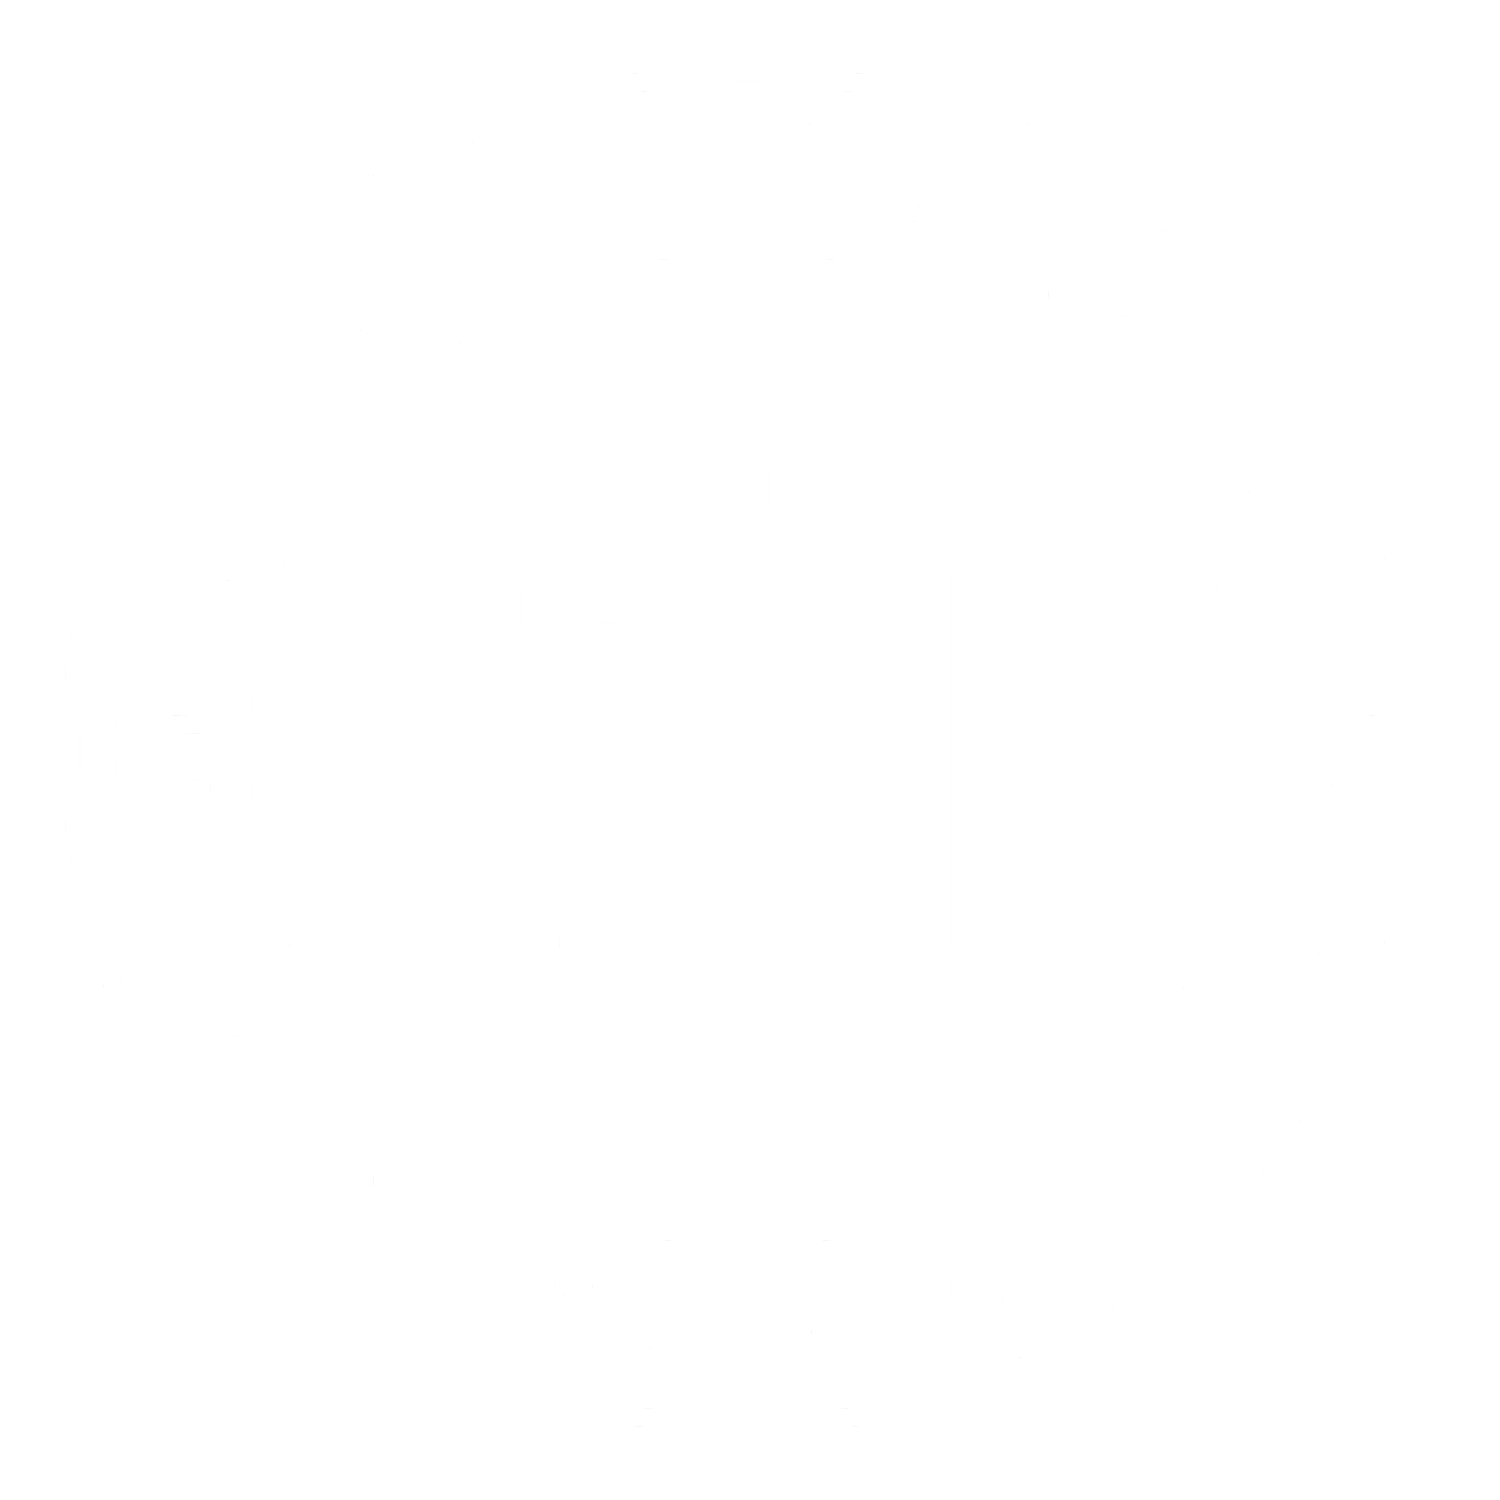 The Portland Darkroom